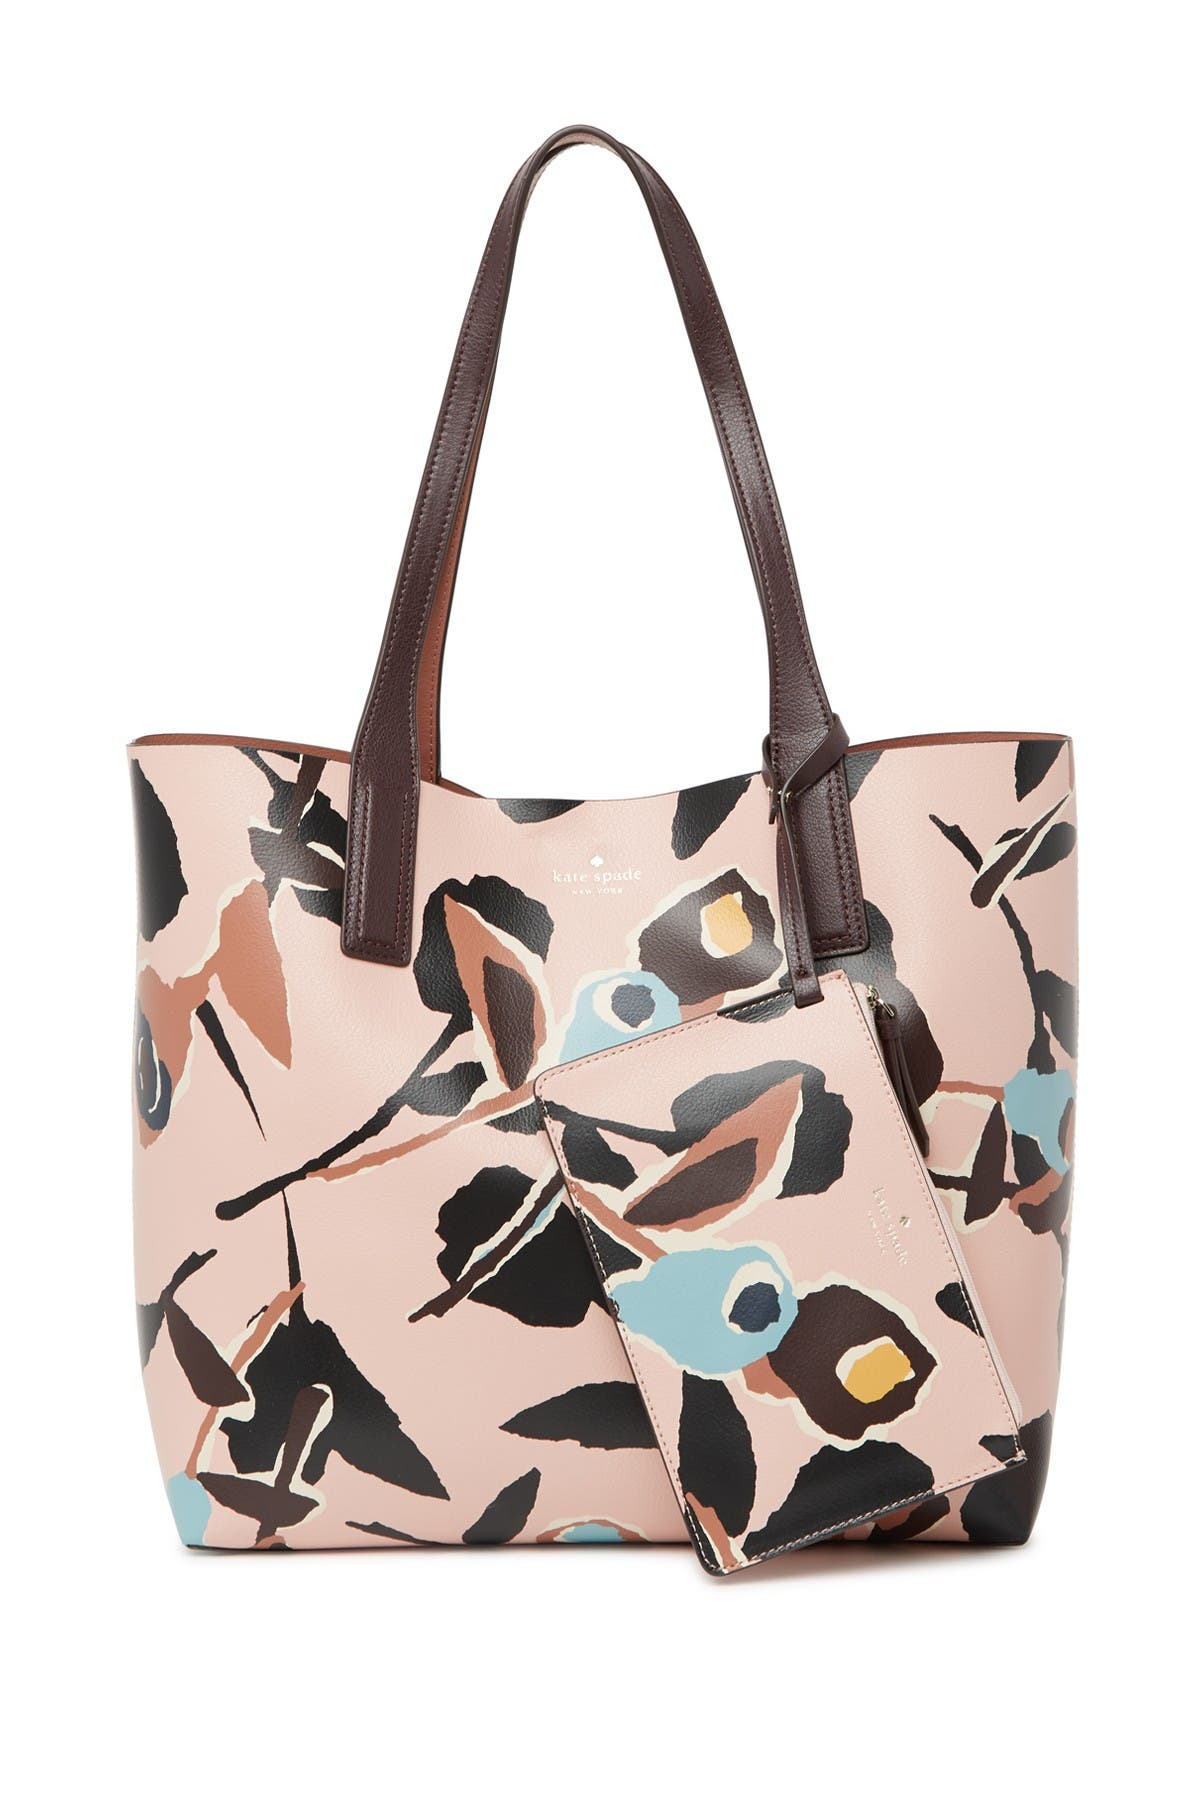 Image of kate spade new york abstract print reversible leather tote